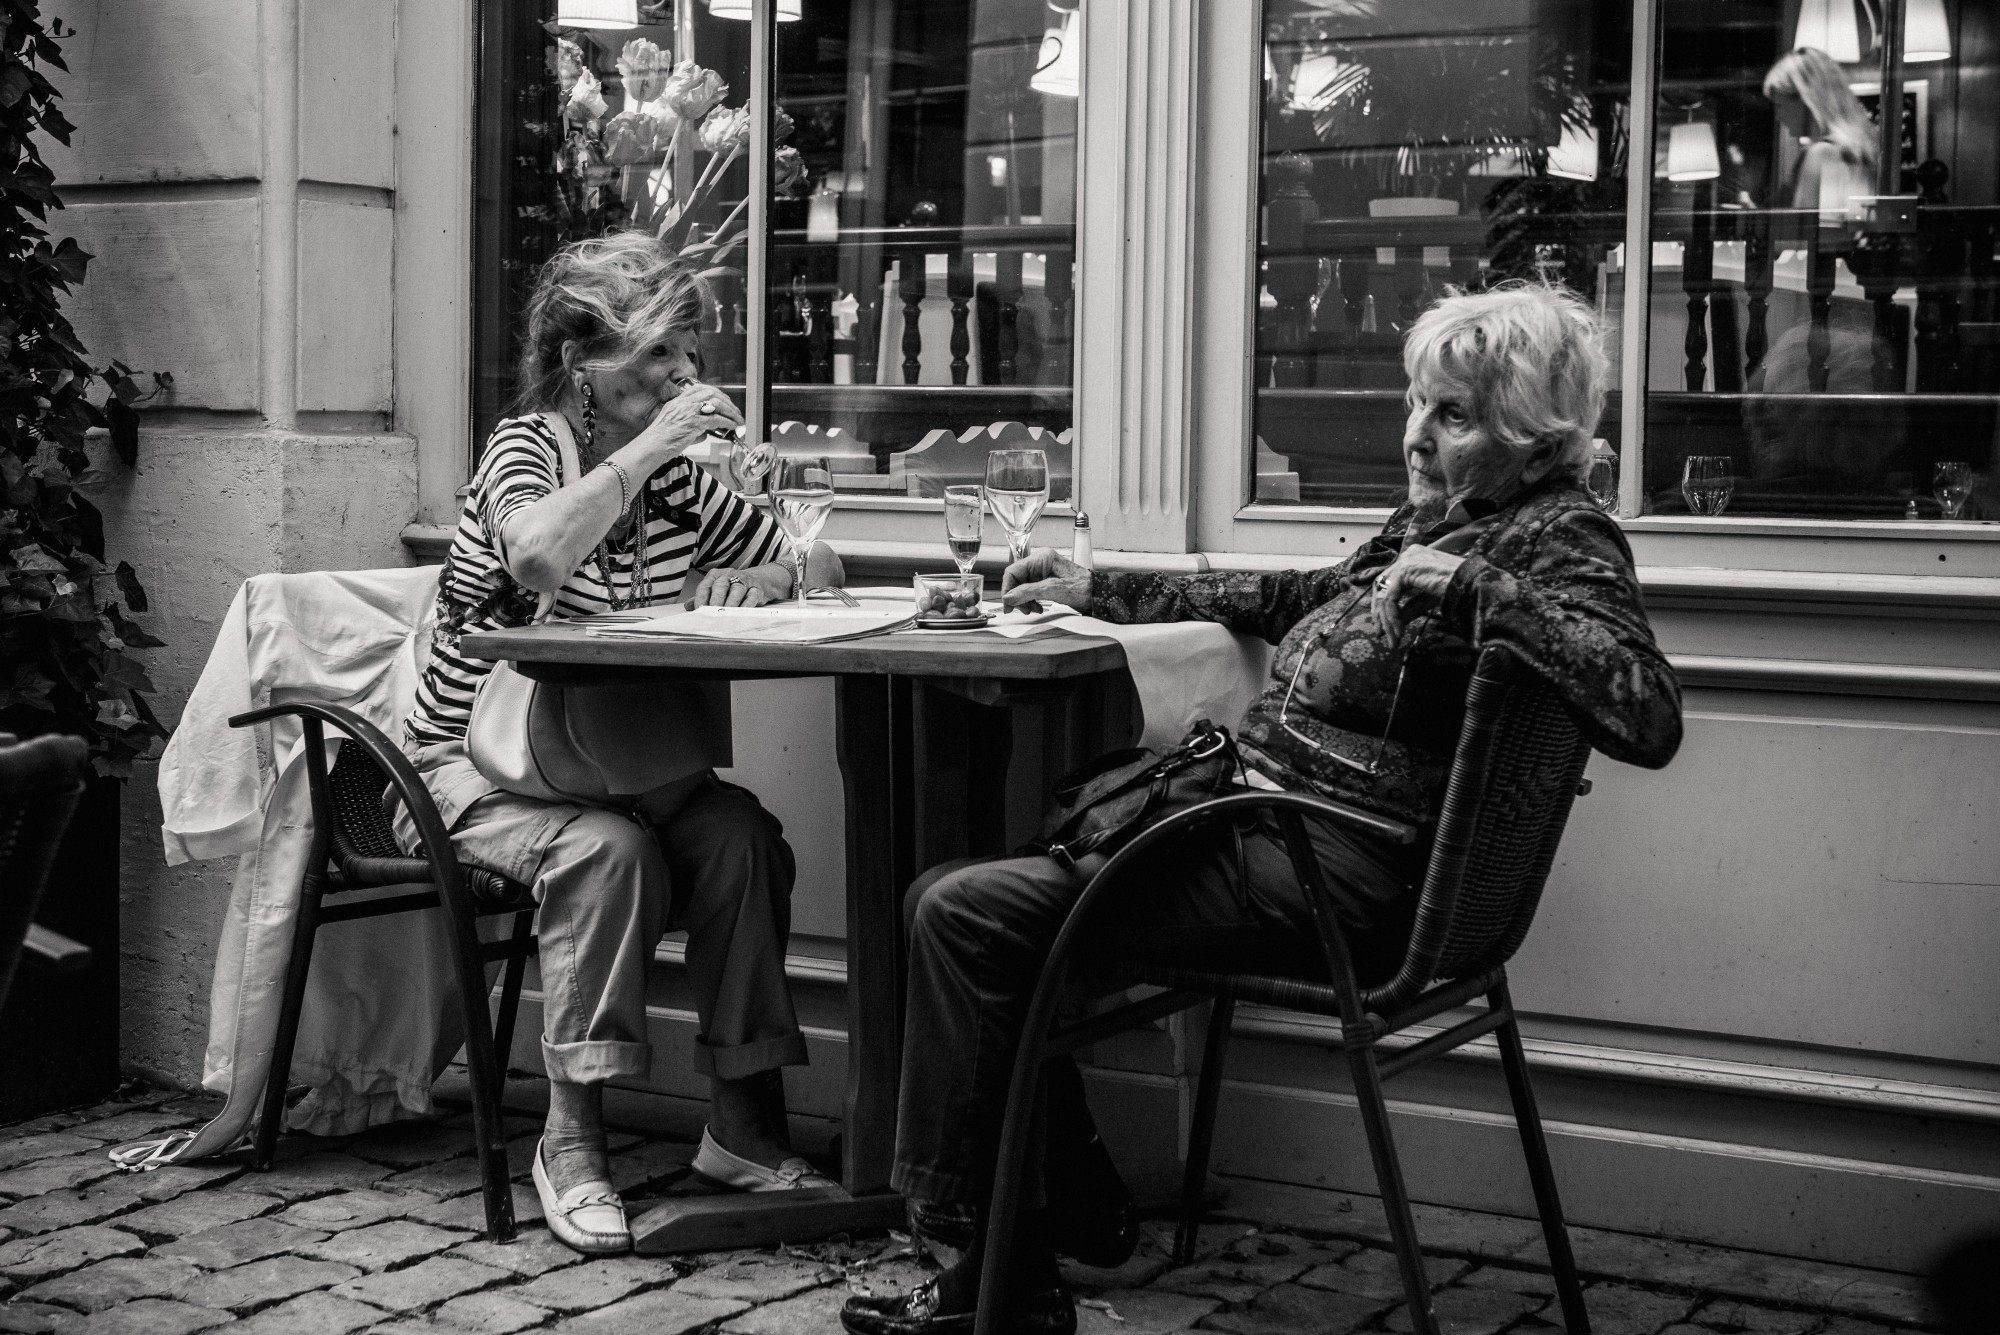 2 elderly ladies sat at a table enjoying a drink together